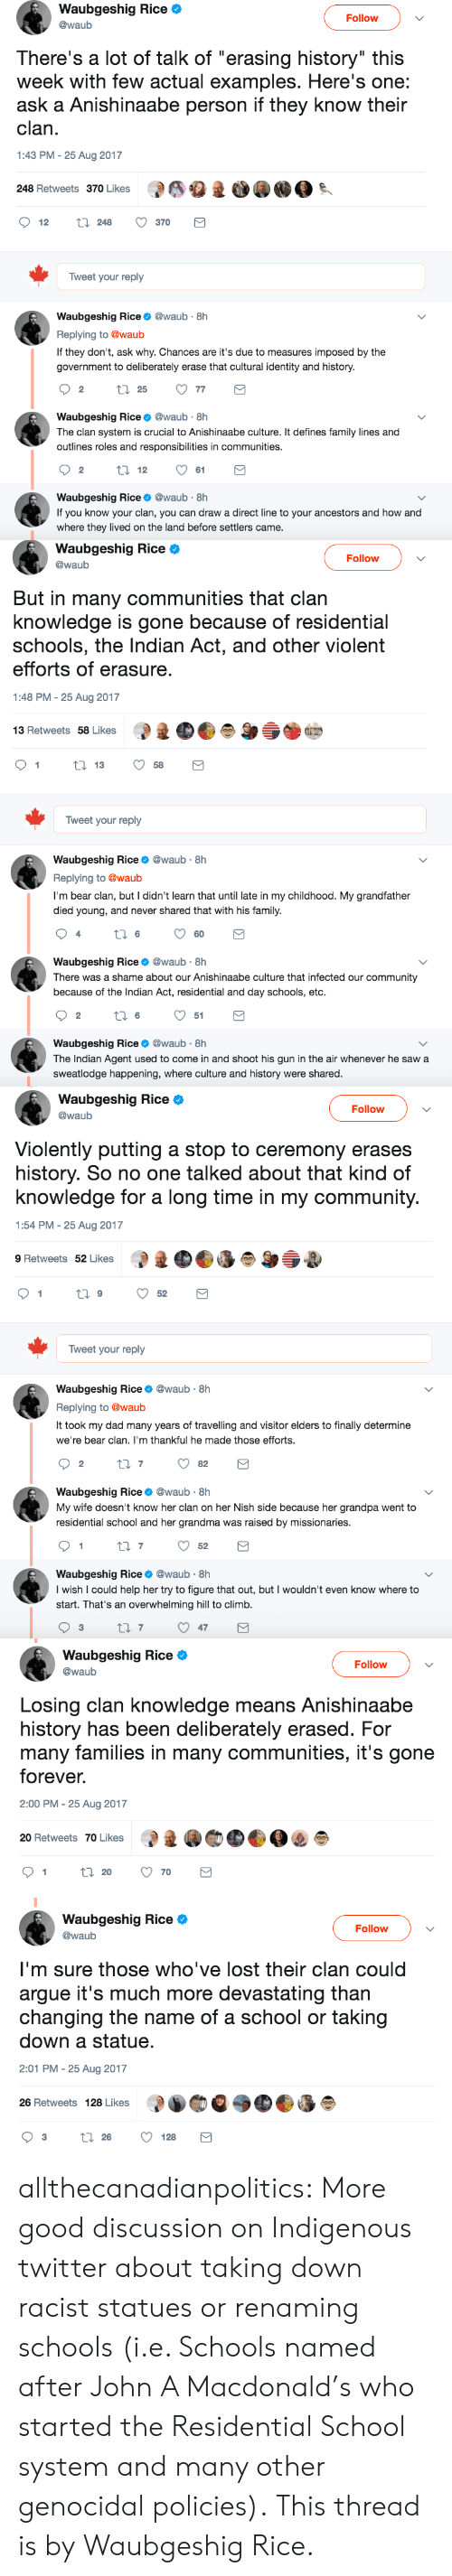 "Arguing, Community, and Dad: Waubgeshig Rice  @waub  Follow  There's a lot of talk of ""erasing history"" this  week with few actual examples. Here's one:  ask a Anishinaabe person if they know their  clan  1:43 PM - 25 Aug 2017  248 Retweets 370 Likes  1  12 t 248 370  Tweet your reply  Waubgeshig Rice@waub 8h  Replying to @waub  If they don't, ask why. Chances are it's due to measures imposed by the  government to deliberately erase that cultural identity and history.  Waubgeshig Rice@waub 8h  The clan system is crucial to Anishinaabe culture. It defines family lines and  outlines roles and responsibilities in communities  Waubgeshig Rice@waub 8h  If you know your clan, you can draw a direct line to your ancestors and how and  where they lived on the land before settlers came   Waubgeshig Rice Ф  @waub  Follow  But in many communities that clan  knowledge is gone because of residential  schools, the Indian Act, and other violent  efforts of erasure  1:48 PM - 25 Aug 2017  13 Retweets 58 Likes  1358  Tweet your reply  Waubgeshig Rice@waub 8h  Replying to @waub  I'm bear clan, but I didn't learn that until late in my childhood. My grandfather  died young, and never shared that with his family  60  Waubgeshig Rice@waub 8h  There was a shame about our Anishinaabe culture that infected our community  because of the Indian Act, residential and day schools, etc.  2  6  51  Waubgeshig Rice@waub 8h  The Indian Agent used to come in and shoot his gun in the air whenever he saw a  sweatlodge happening, where culture and history were shared   Waubgeshig Rice Ф  @waub  Follow  Violently putting a stop to ceremony erases  history. So no one talked about that kind of  knowledge for a long time in my community  1:54 PM - 25 Aug 2017  9 Retweets 52 Likes  Tweet your reply  Waubgeshig Rice@waub 8h  Replying to @waub  It took my dad many years of travelling and visitor elders to finally determine  we're bear clan. I'm thankful he made those efforts  2  Waubgeshig Rice@waub 8h  My wife doesn't know her clan on her Nish side because her grandpa went to  residential school and her grandma was raised by missionaries  Waubgeshig Rice@waub 8h  I wish I could help her try to figure that out, but I wouldn't even know where to  start. That's an overwhelming hill to climb  3  7   Waubgeshig Rice Ф  @waub  Follow  Losing clan knowledge means Anishinaabe  history has been deliberately erased. For  many families in many communities, it's gone  forever.  2:00 PM - 25 Aug 2017  20 Retweets 70 Likes   Waubgeshig Rice Ф  @waub  Follow  I'm sure those who've lost their clan could  argue it's much more devastating than  changing the name of a school or taking  down a statue.  2:01 PM-25 Aug 2017  26 Retweets 128 Likes allthecanadianpolitics:  More good discussion on Indigenous twitter about taking down racist statues or renaming schools (i.e. Schools named after John A Macdonald's who started the Residential School system and many other genocidal policies). This thread is by Waubgeshig Rice‏."